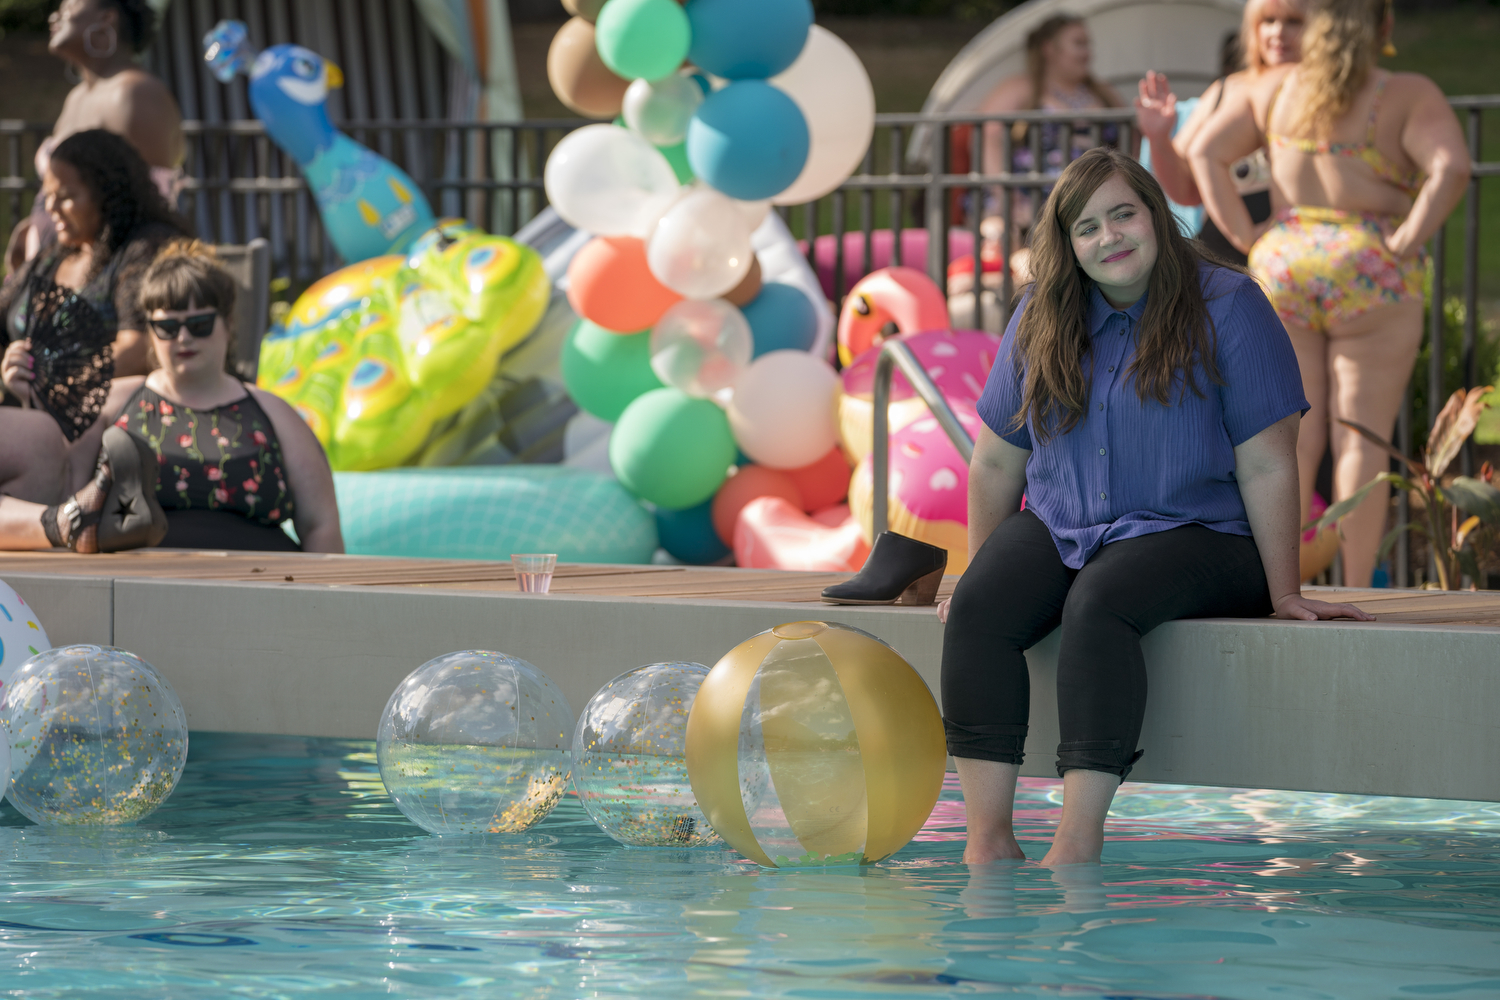 Aidy Bryant with her legs in the pool